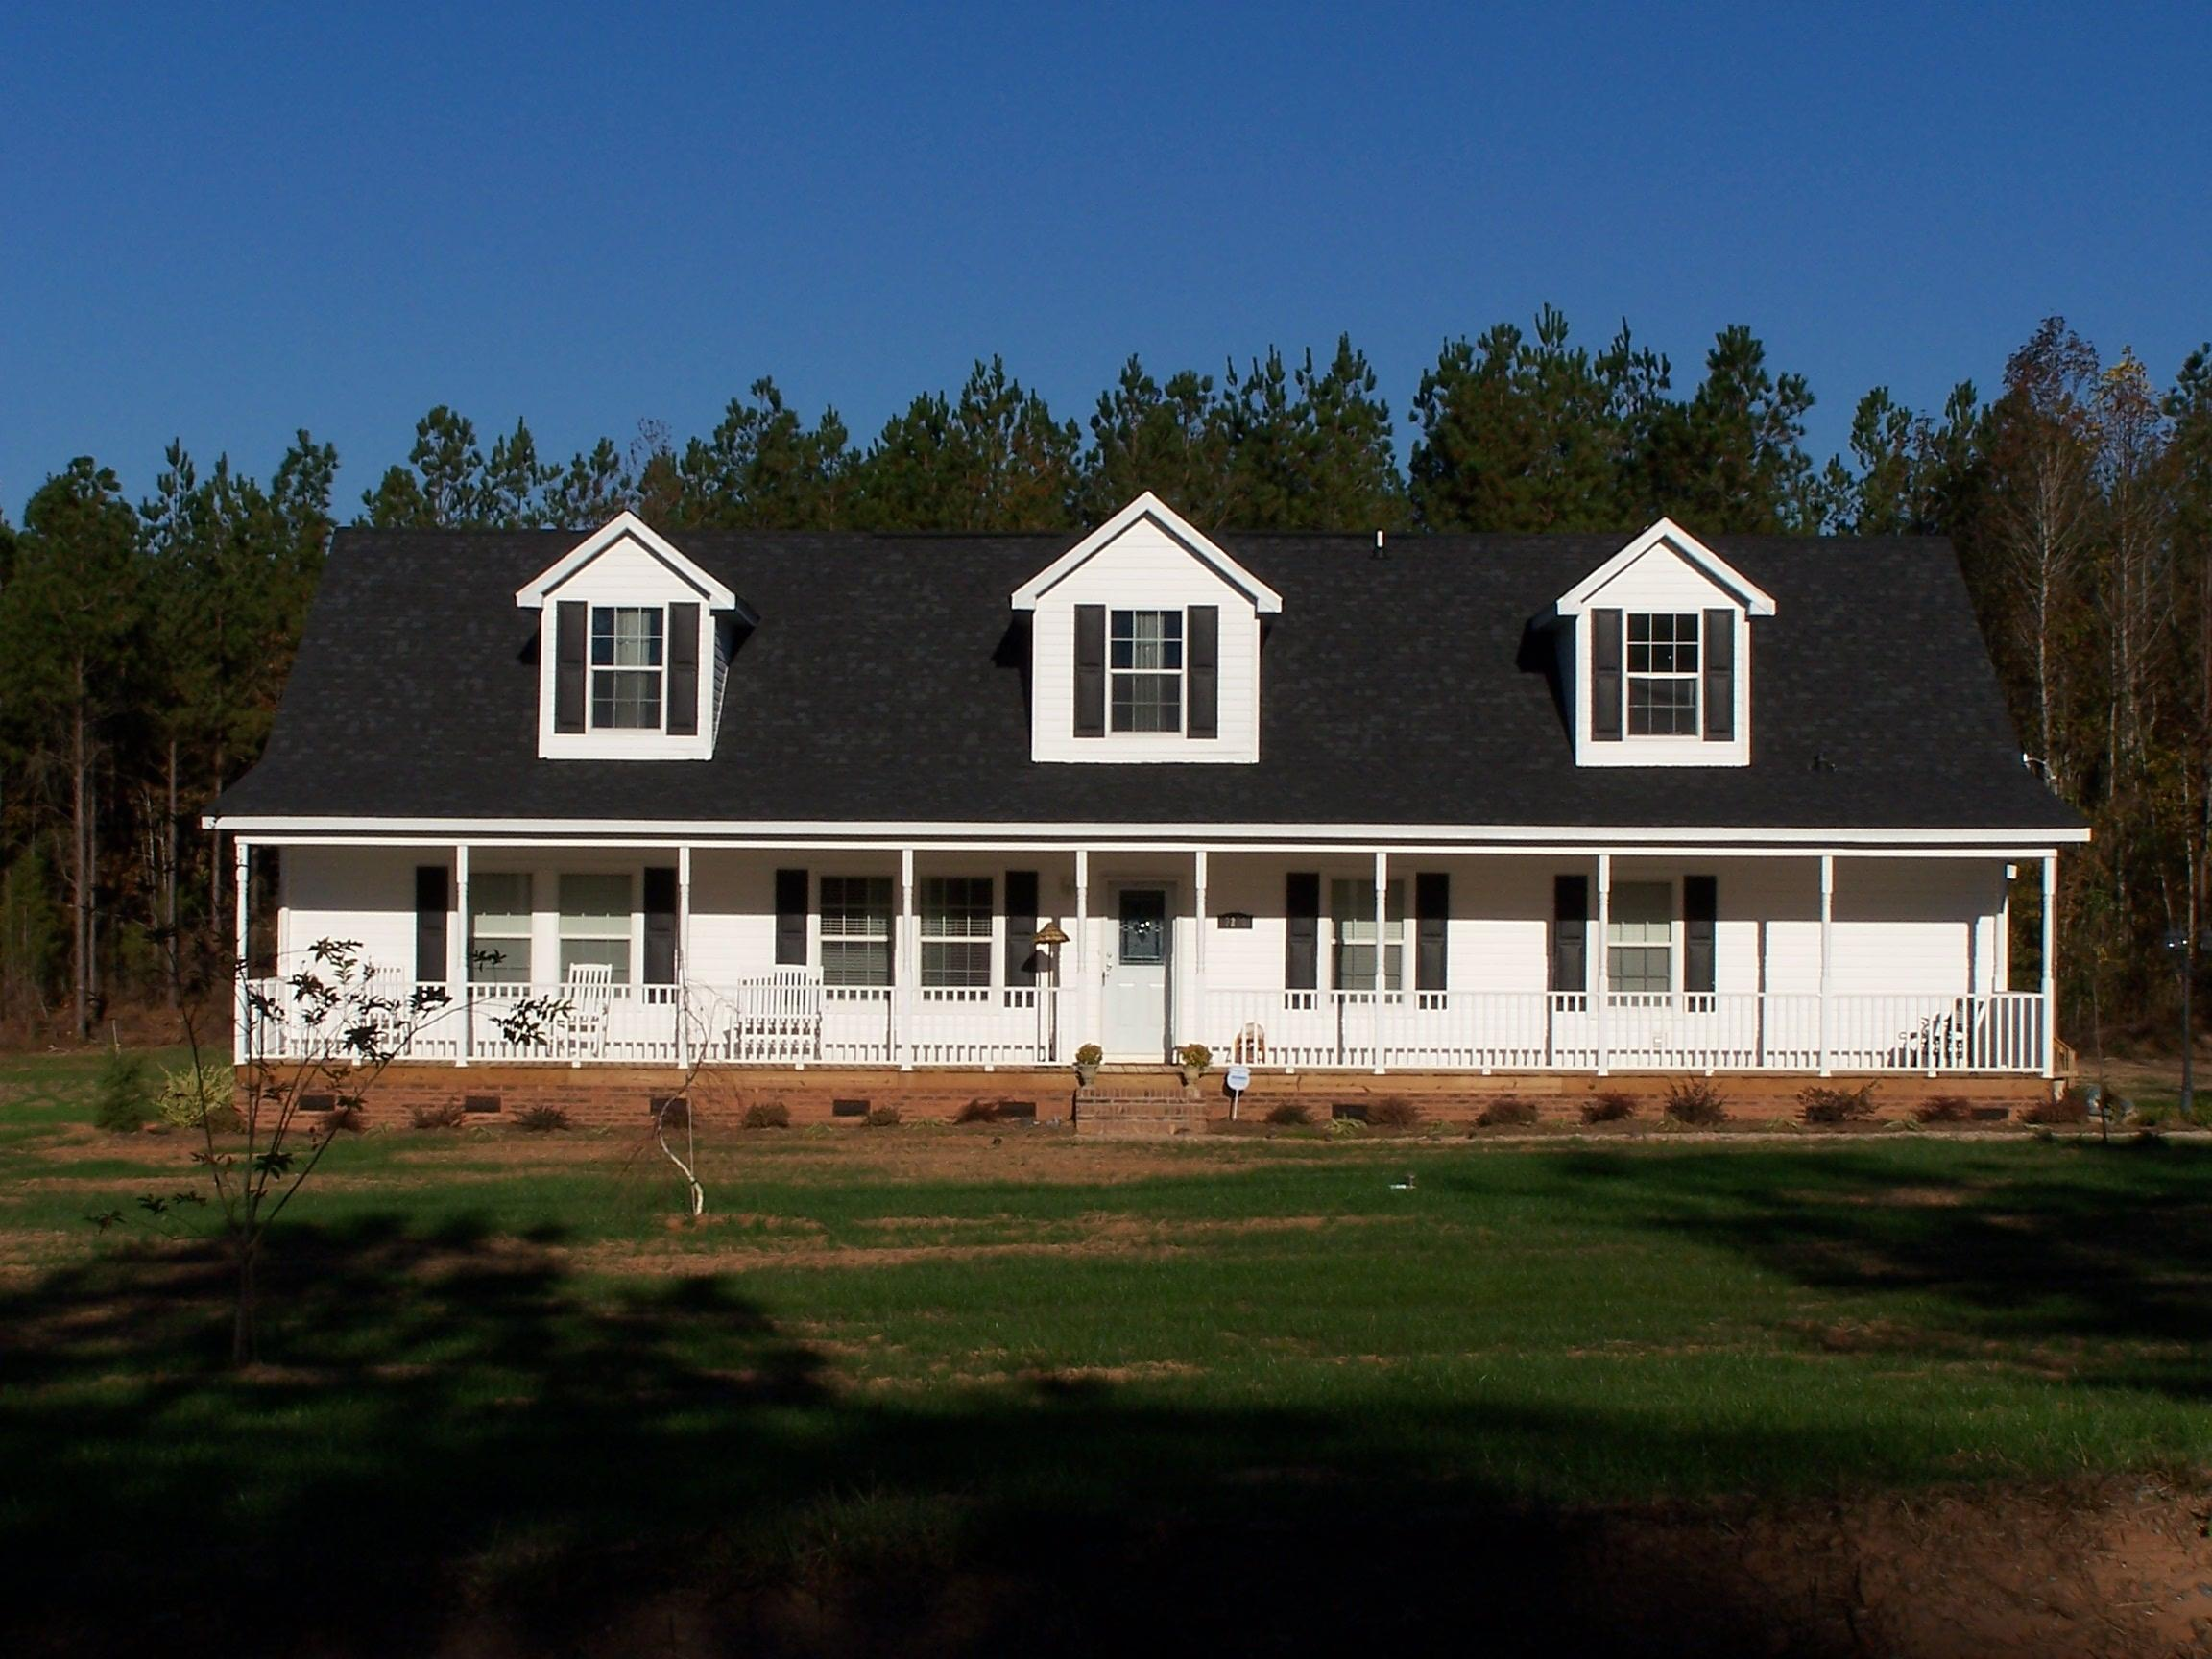 Modular Homes Prices Home Kits Manufactured Houses Prefab